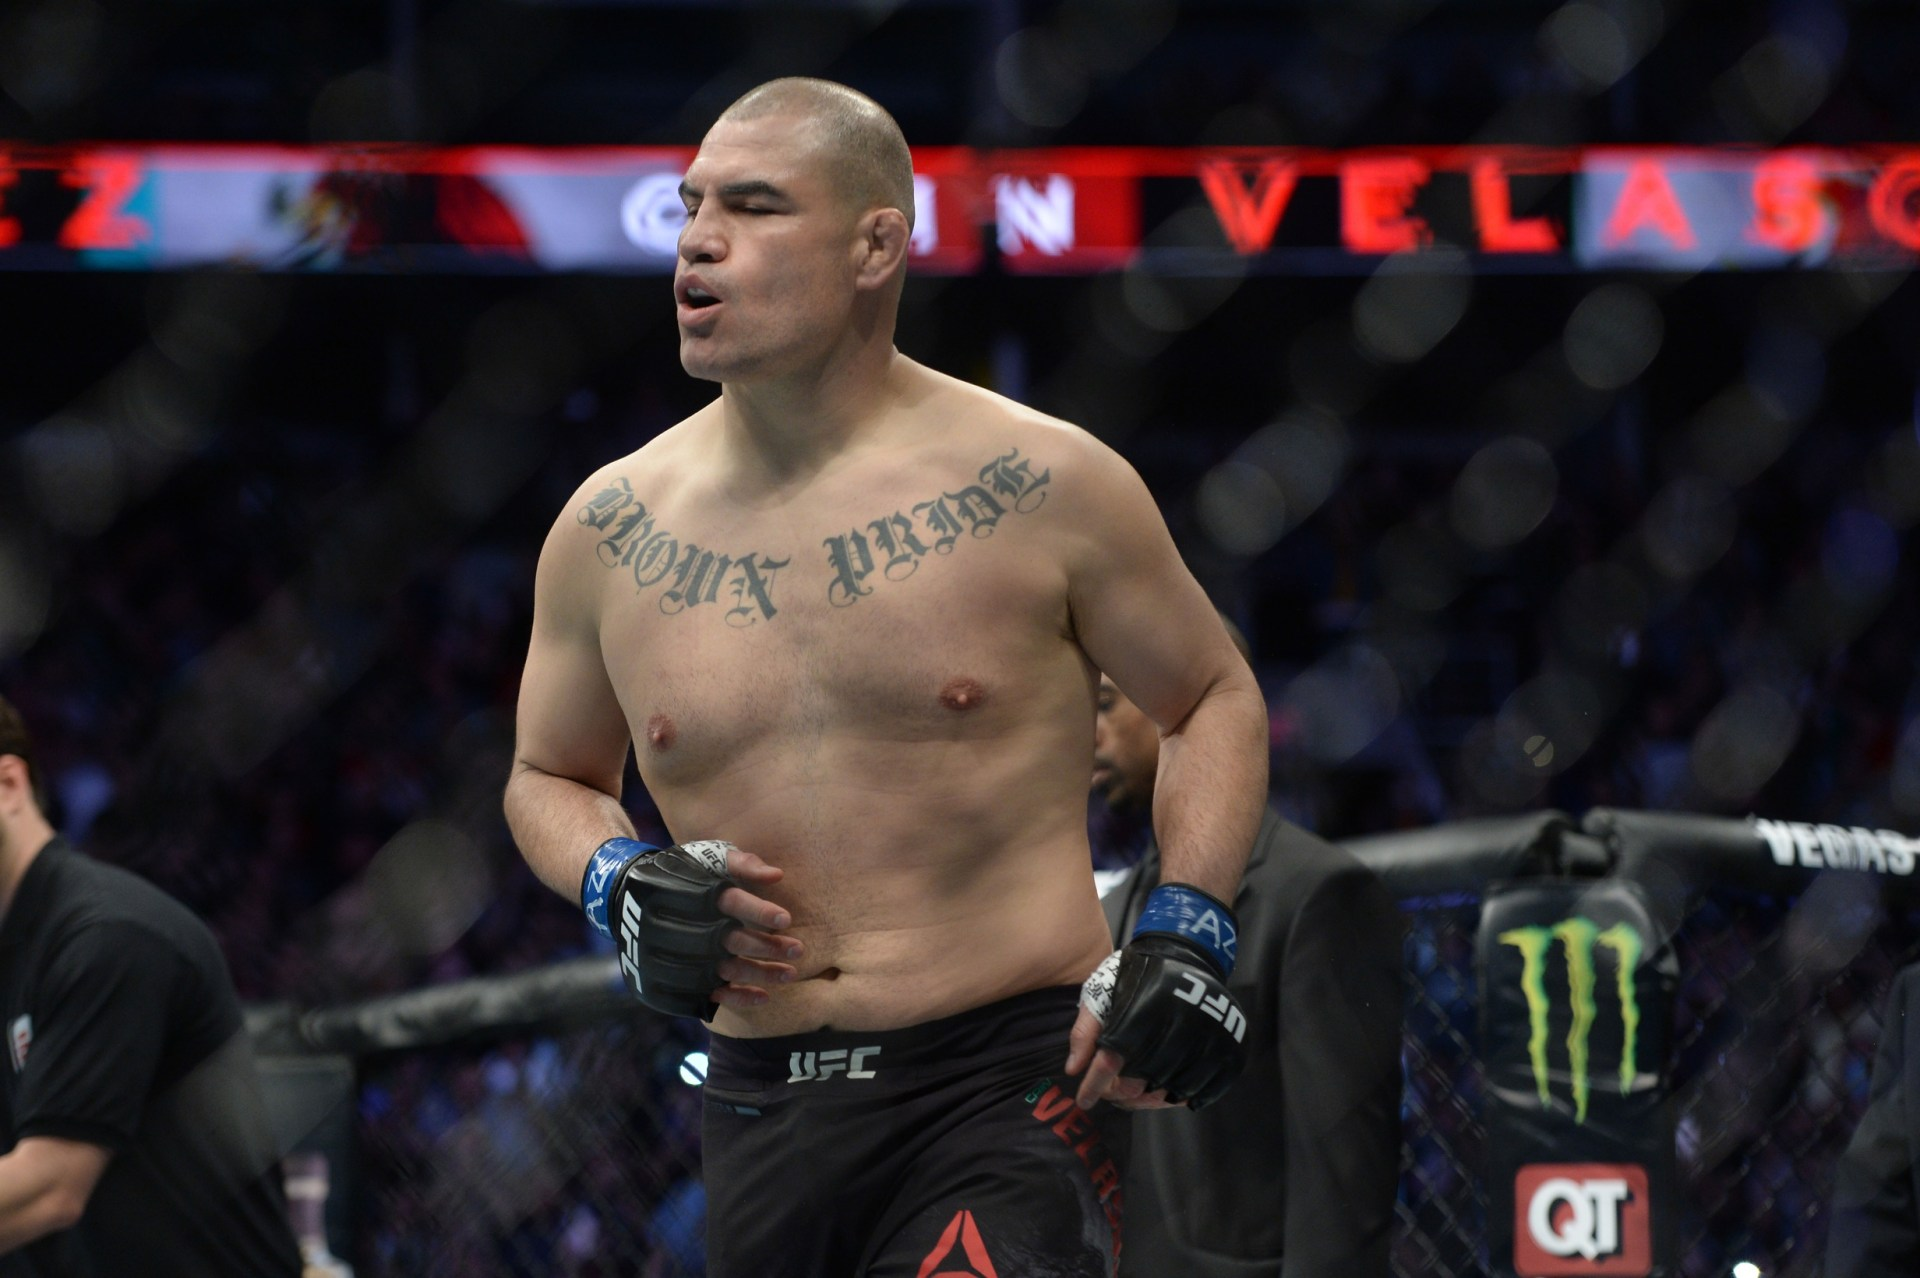 Cain Velasquez's coach says that illegal punch from Francis Ngannou did the damage in the fight -